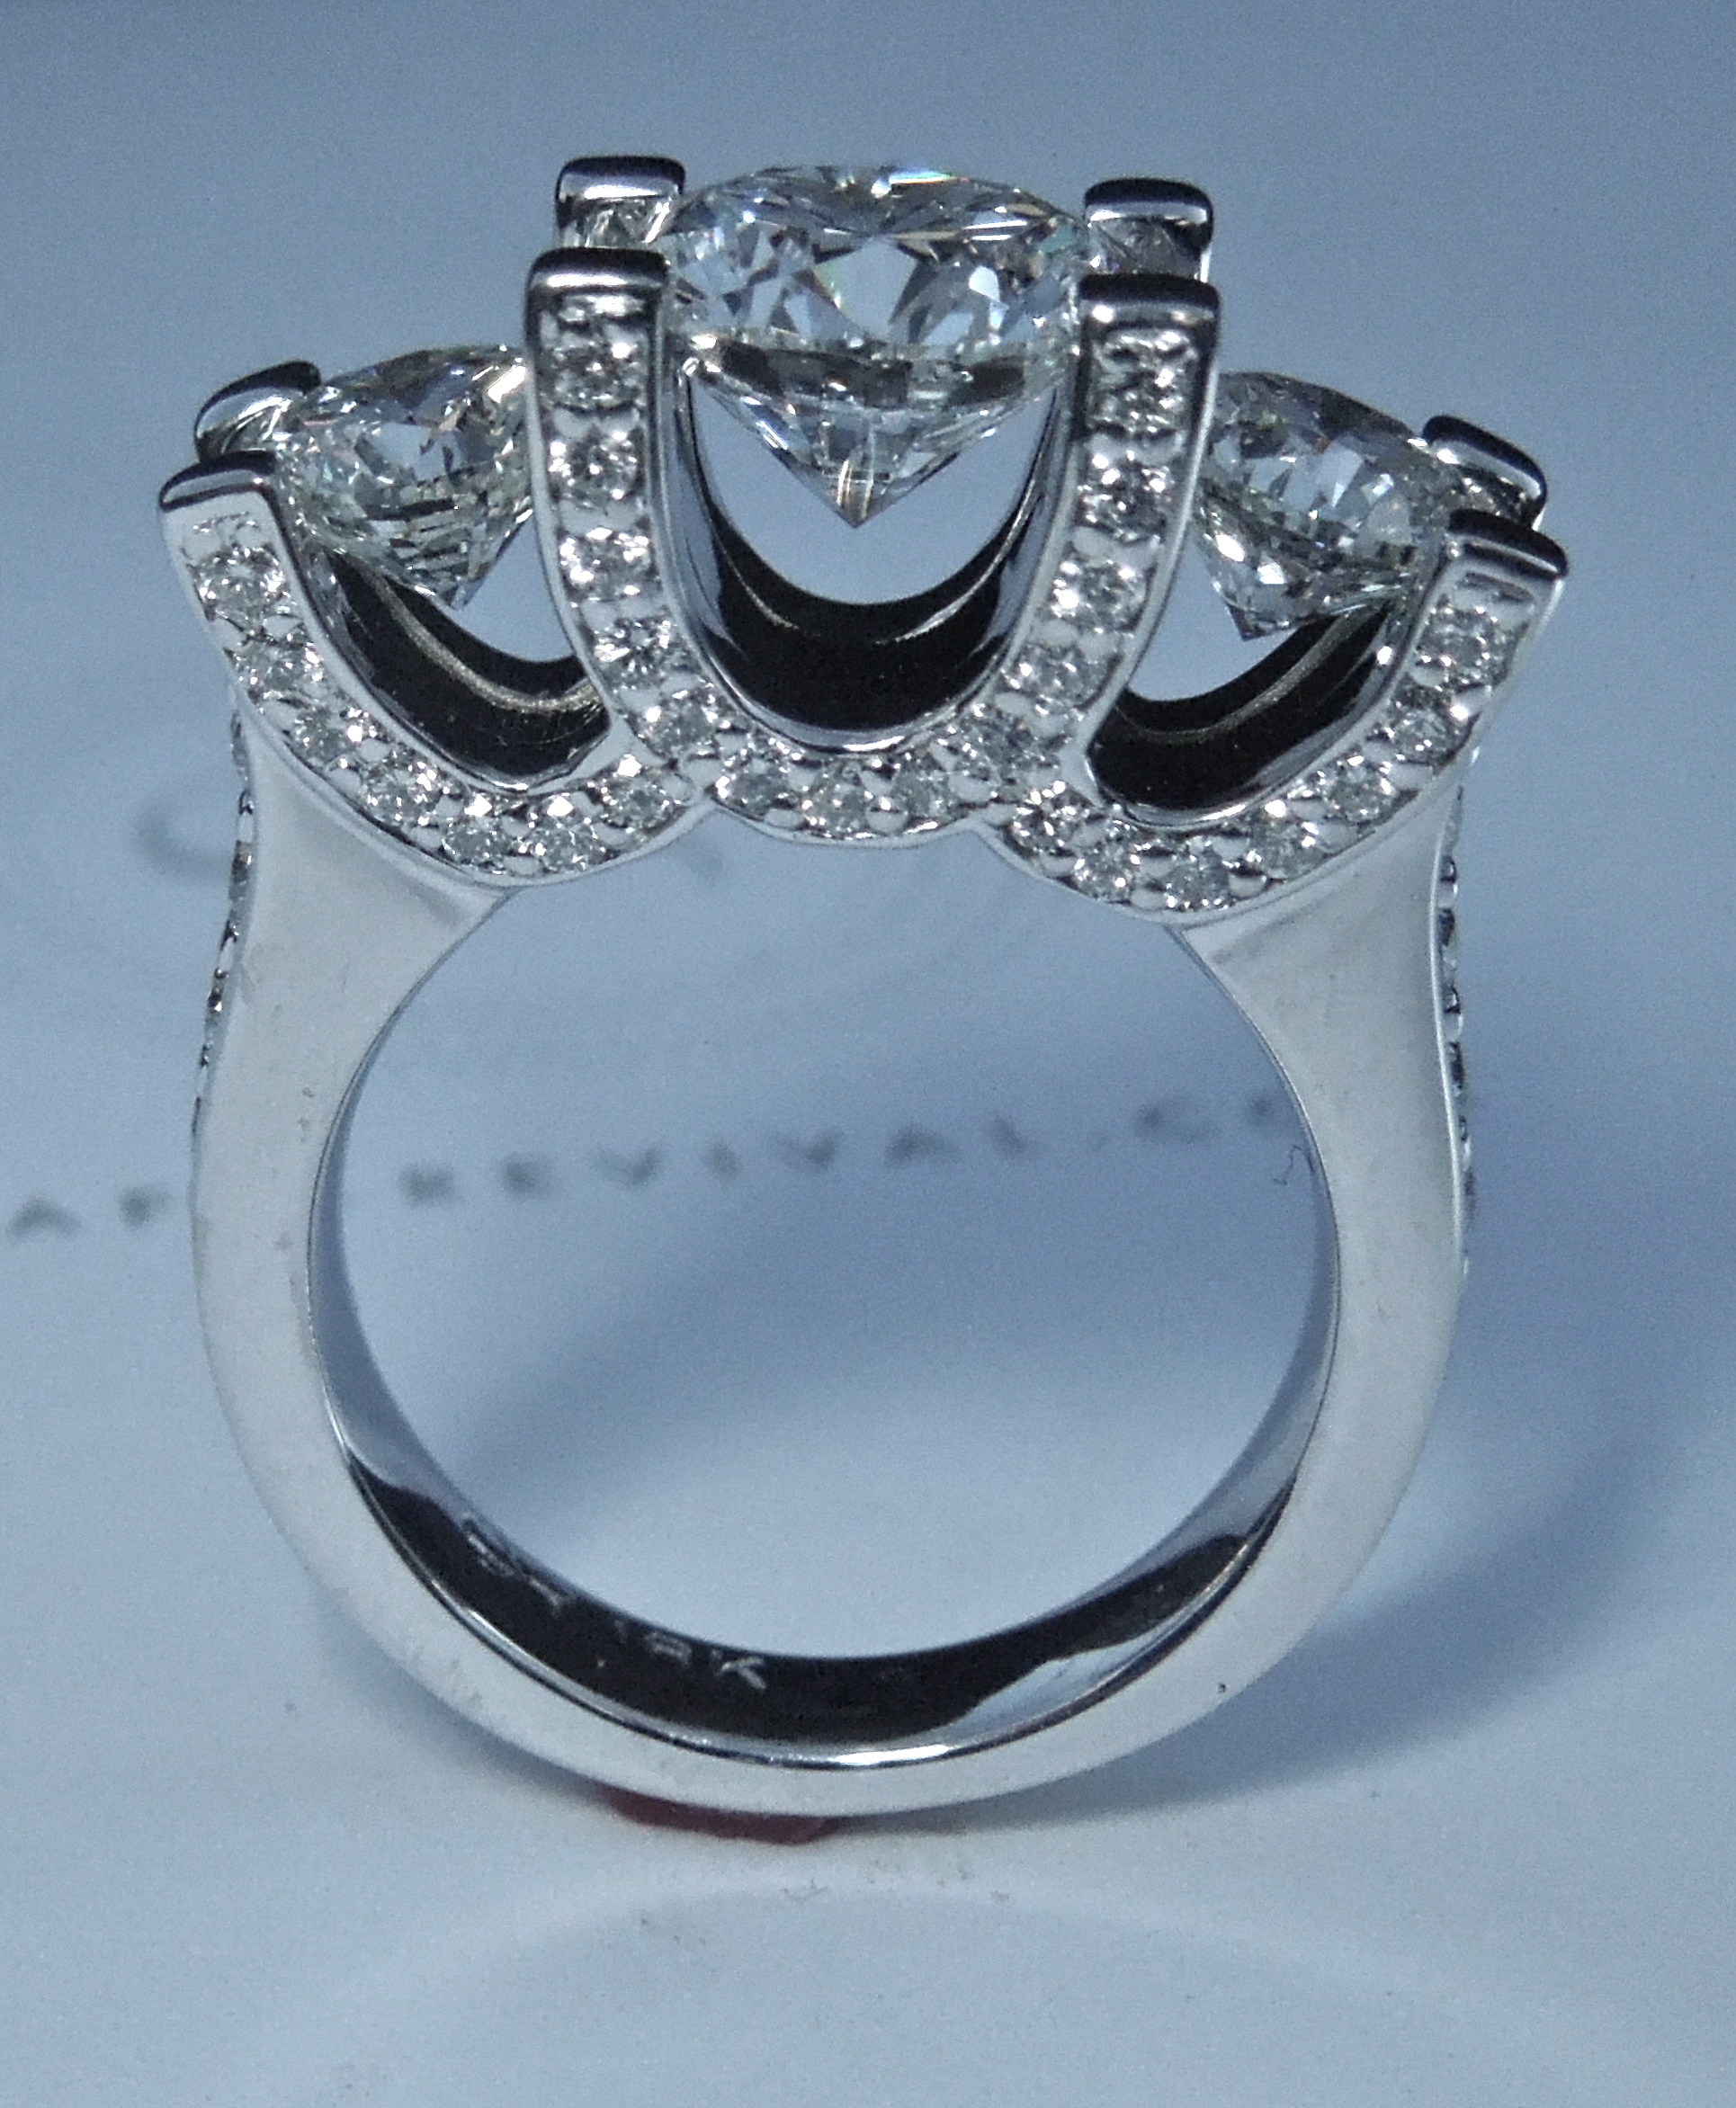 side-view-unique-diamond-engagement-ring-three-stone-ring-craft-revival-jewelry-store-grand-rapids